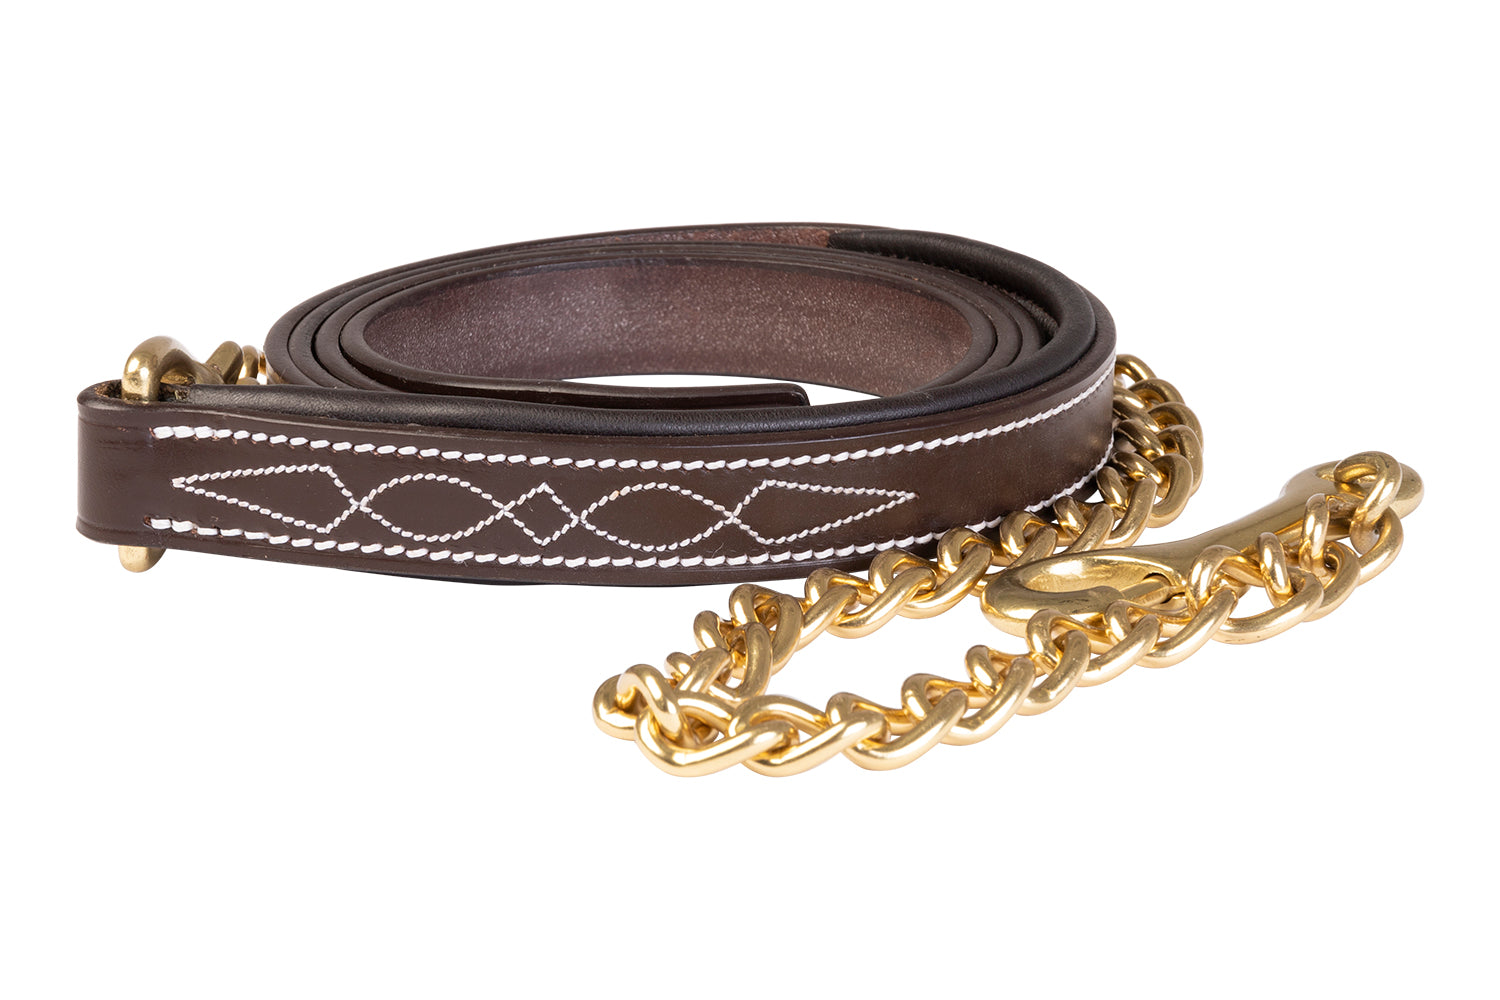 Huntley Equestrian Fancy Stitched Leather Padded Lead with Chain - Huntley Equestrian